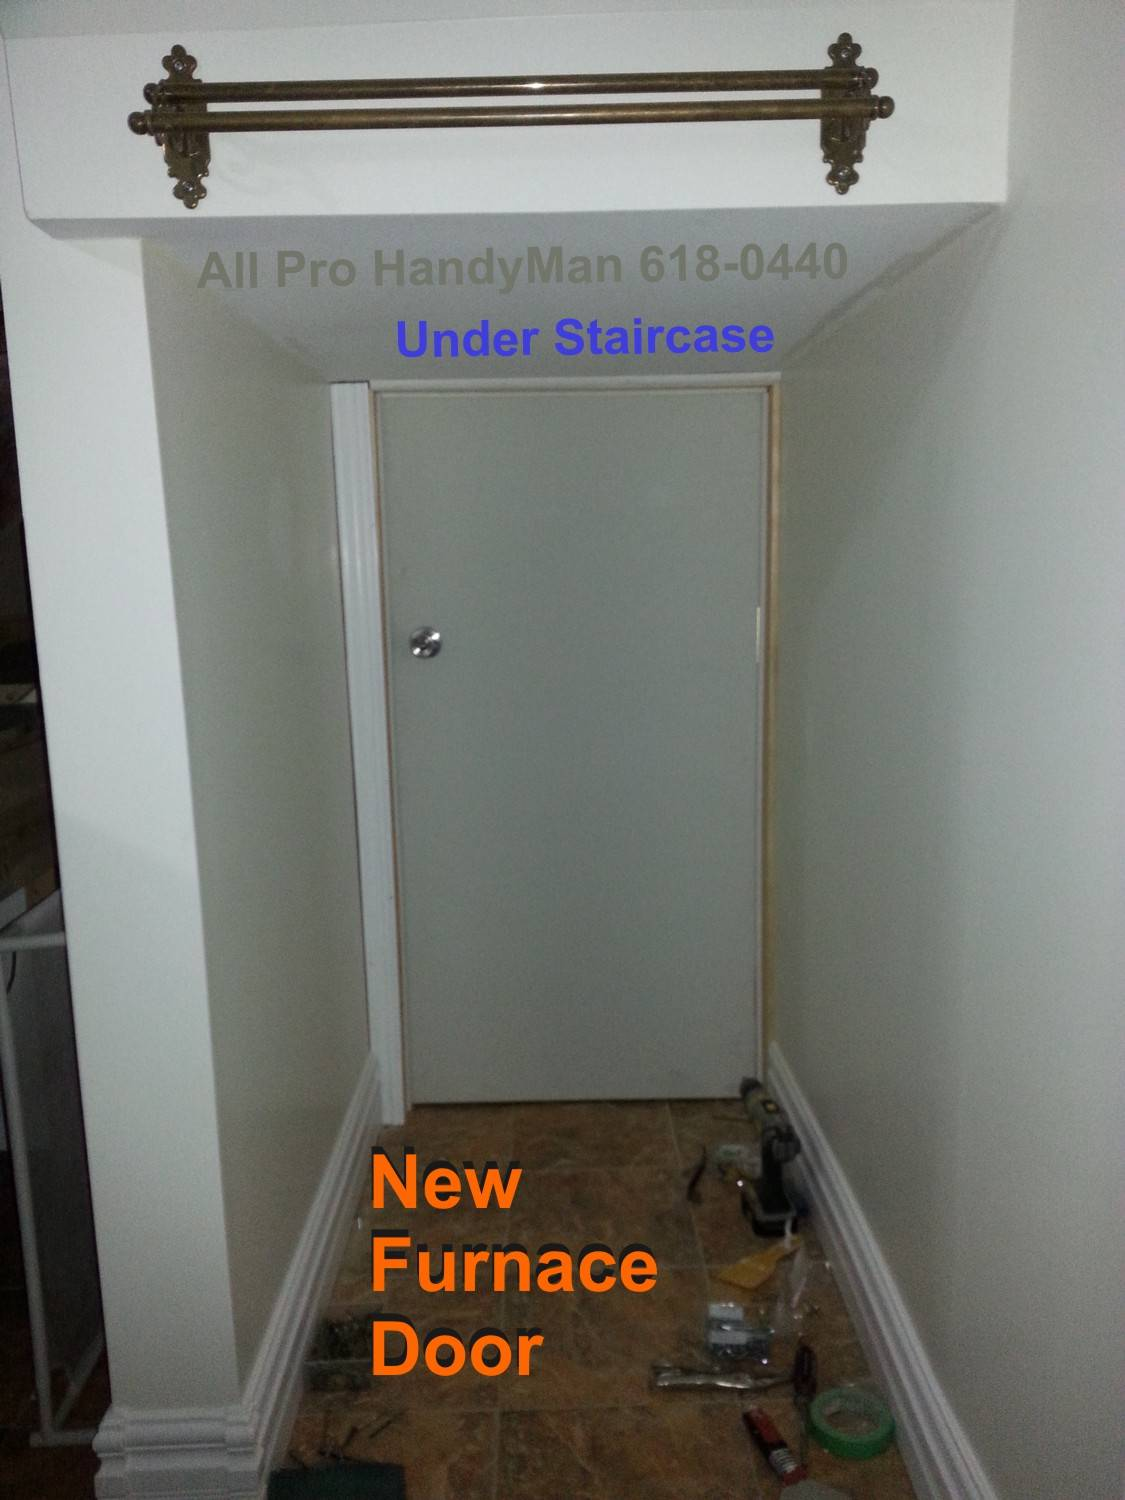 New furnace door